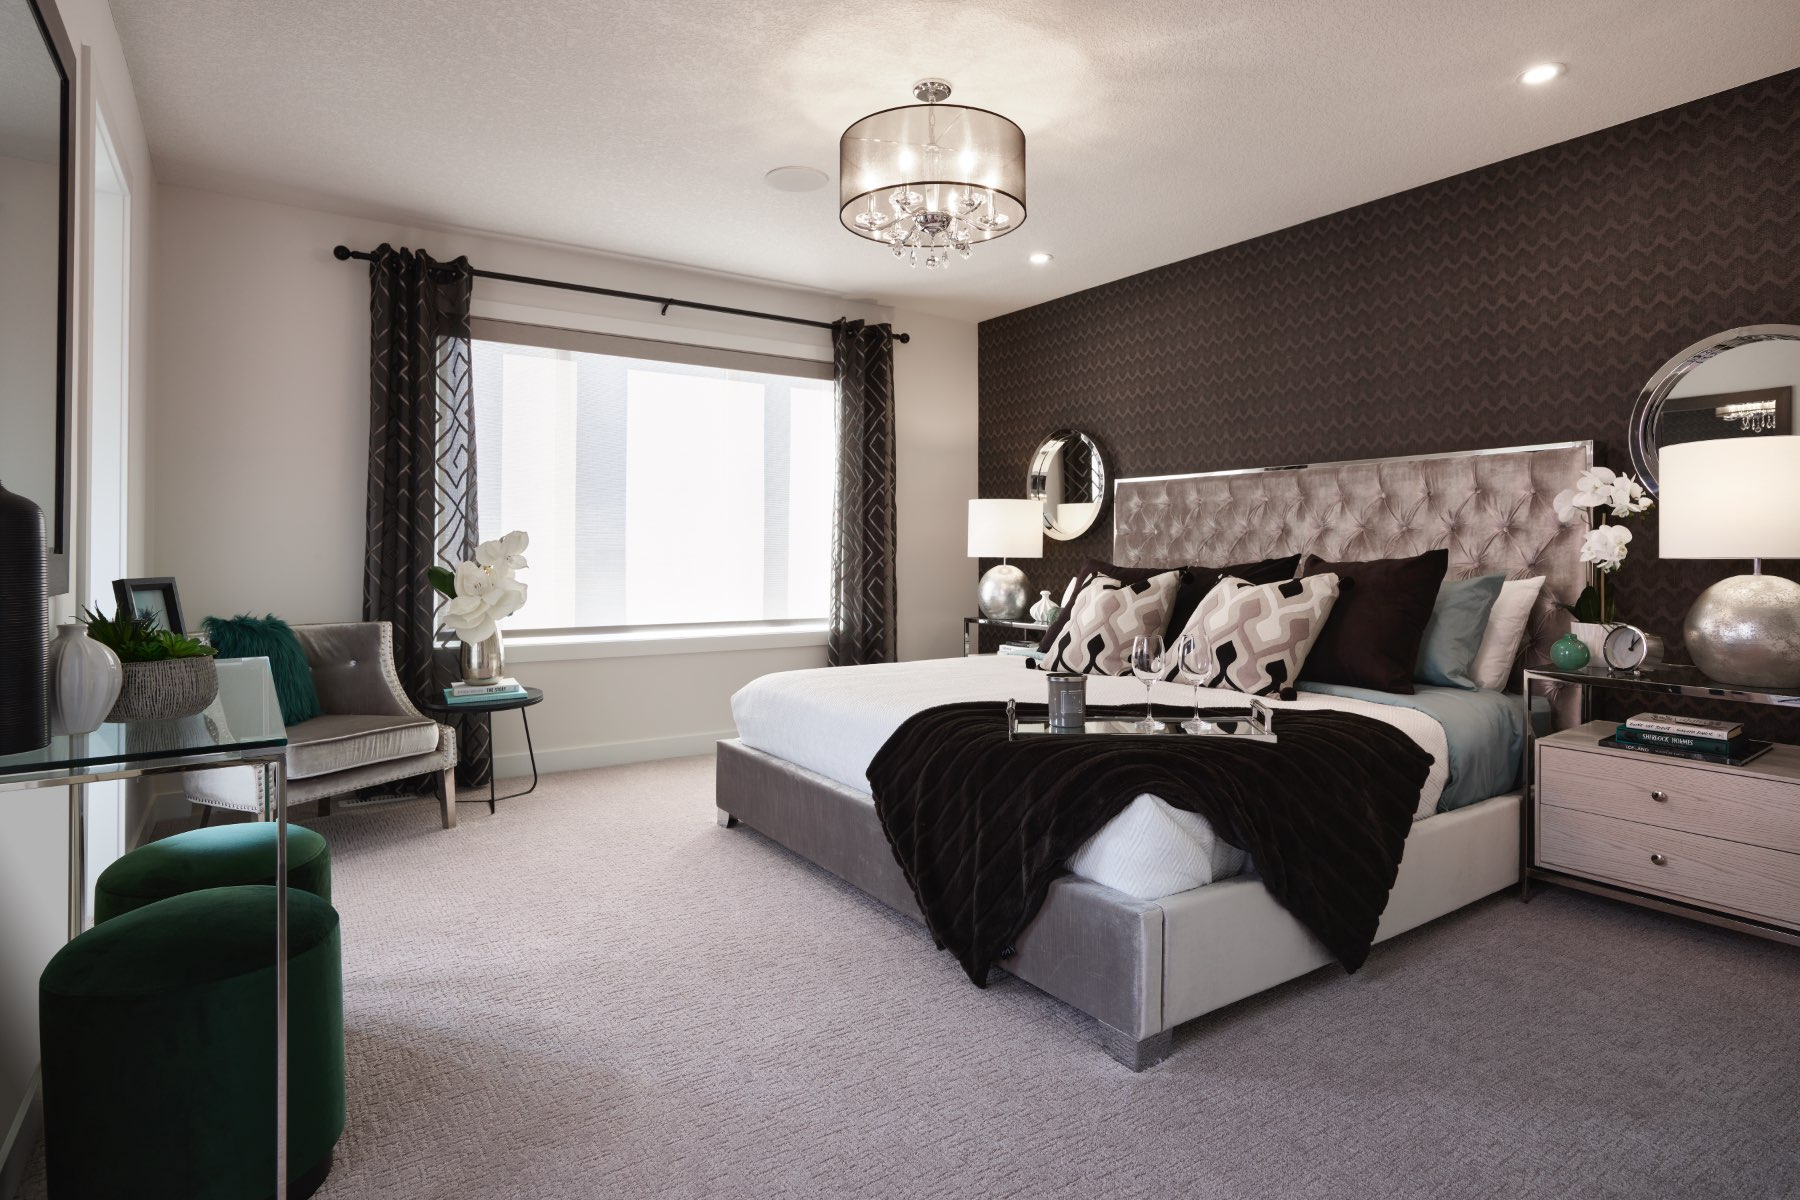 Fairview Plan Bedroom at Cityscape in Calgary Alberta by Mattamy Homes